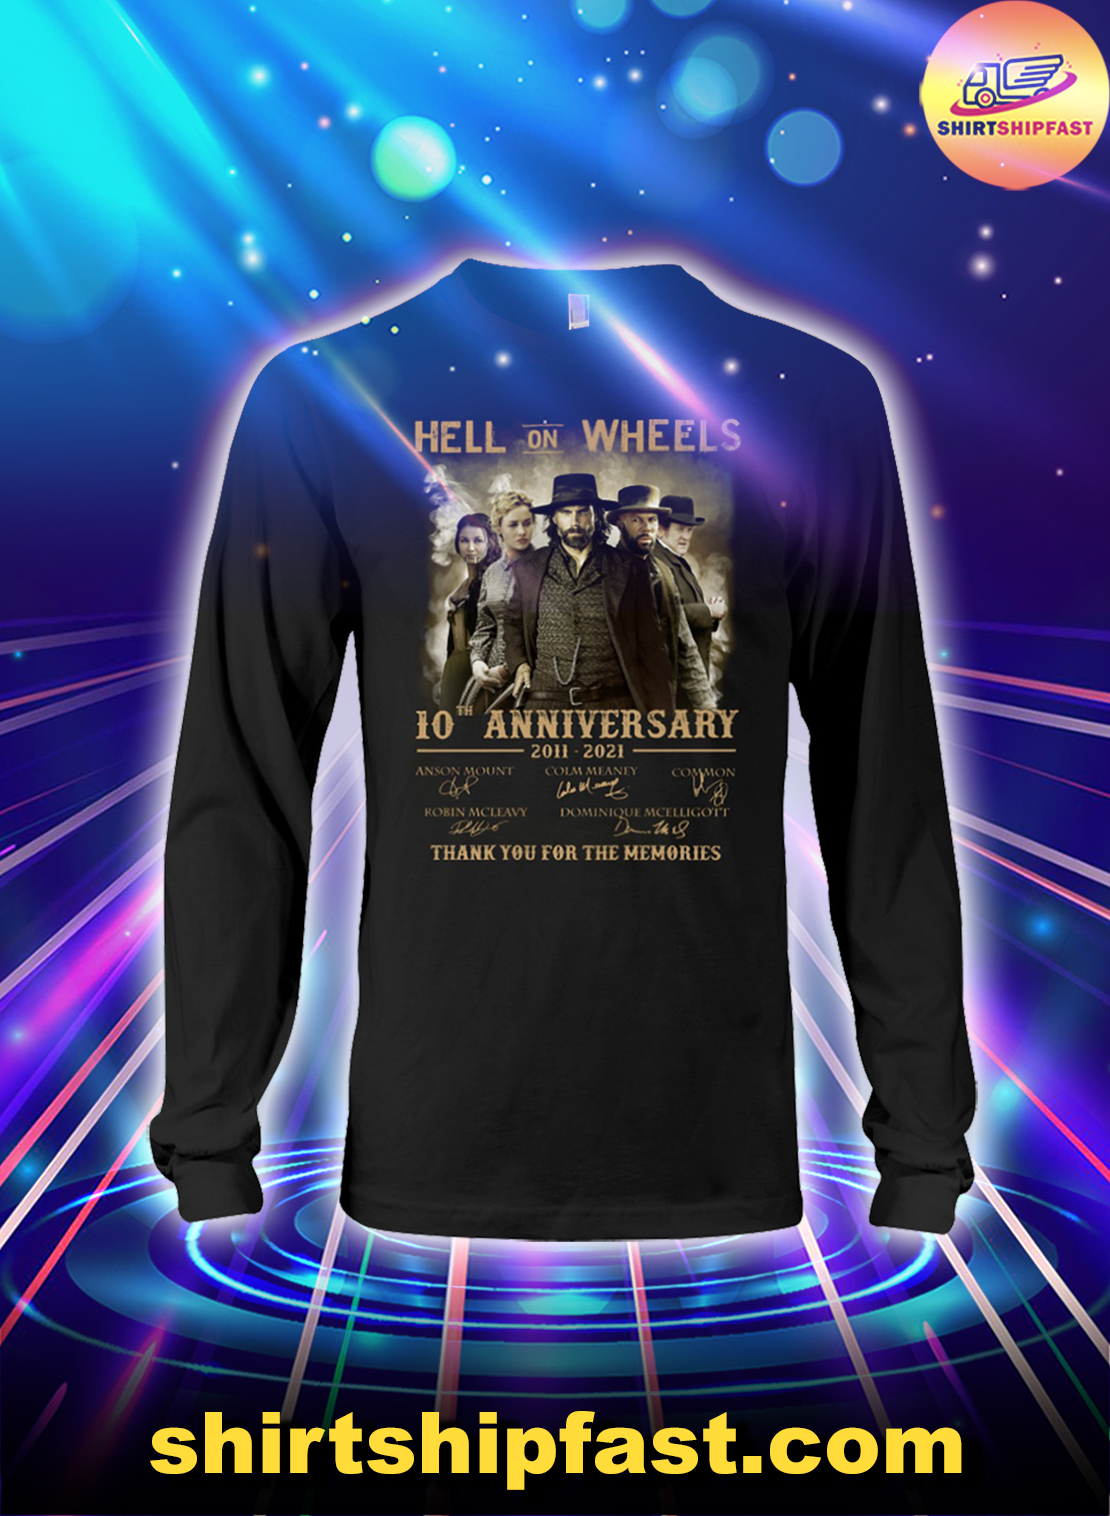 Hell on Wheels 10th anniversary thank you for the memories long sleeve tee